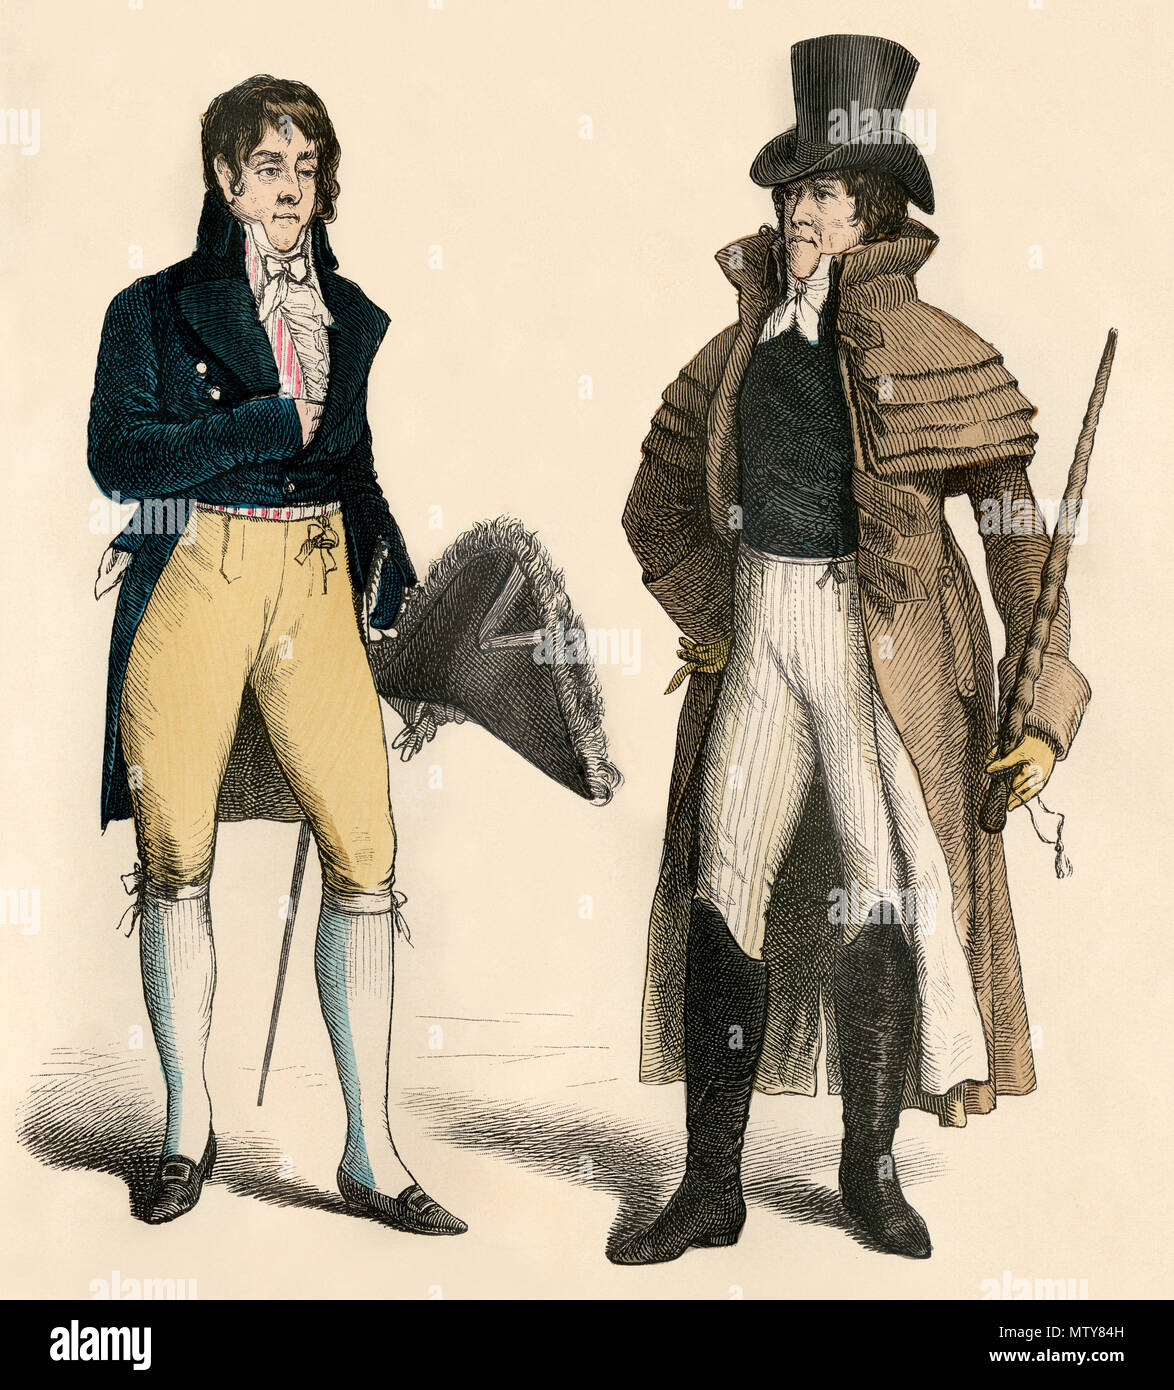 Court dress and man in garrick, French Empire, early 1800s. Hand-colored print - Stock Image